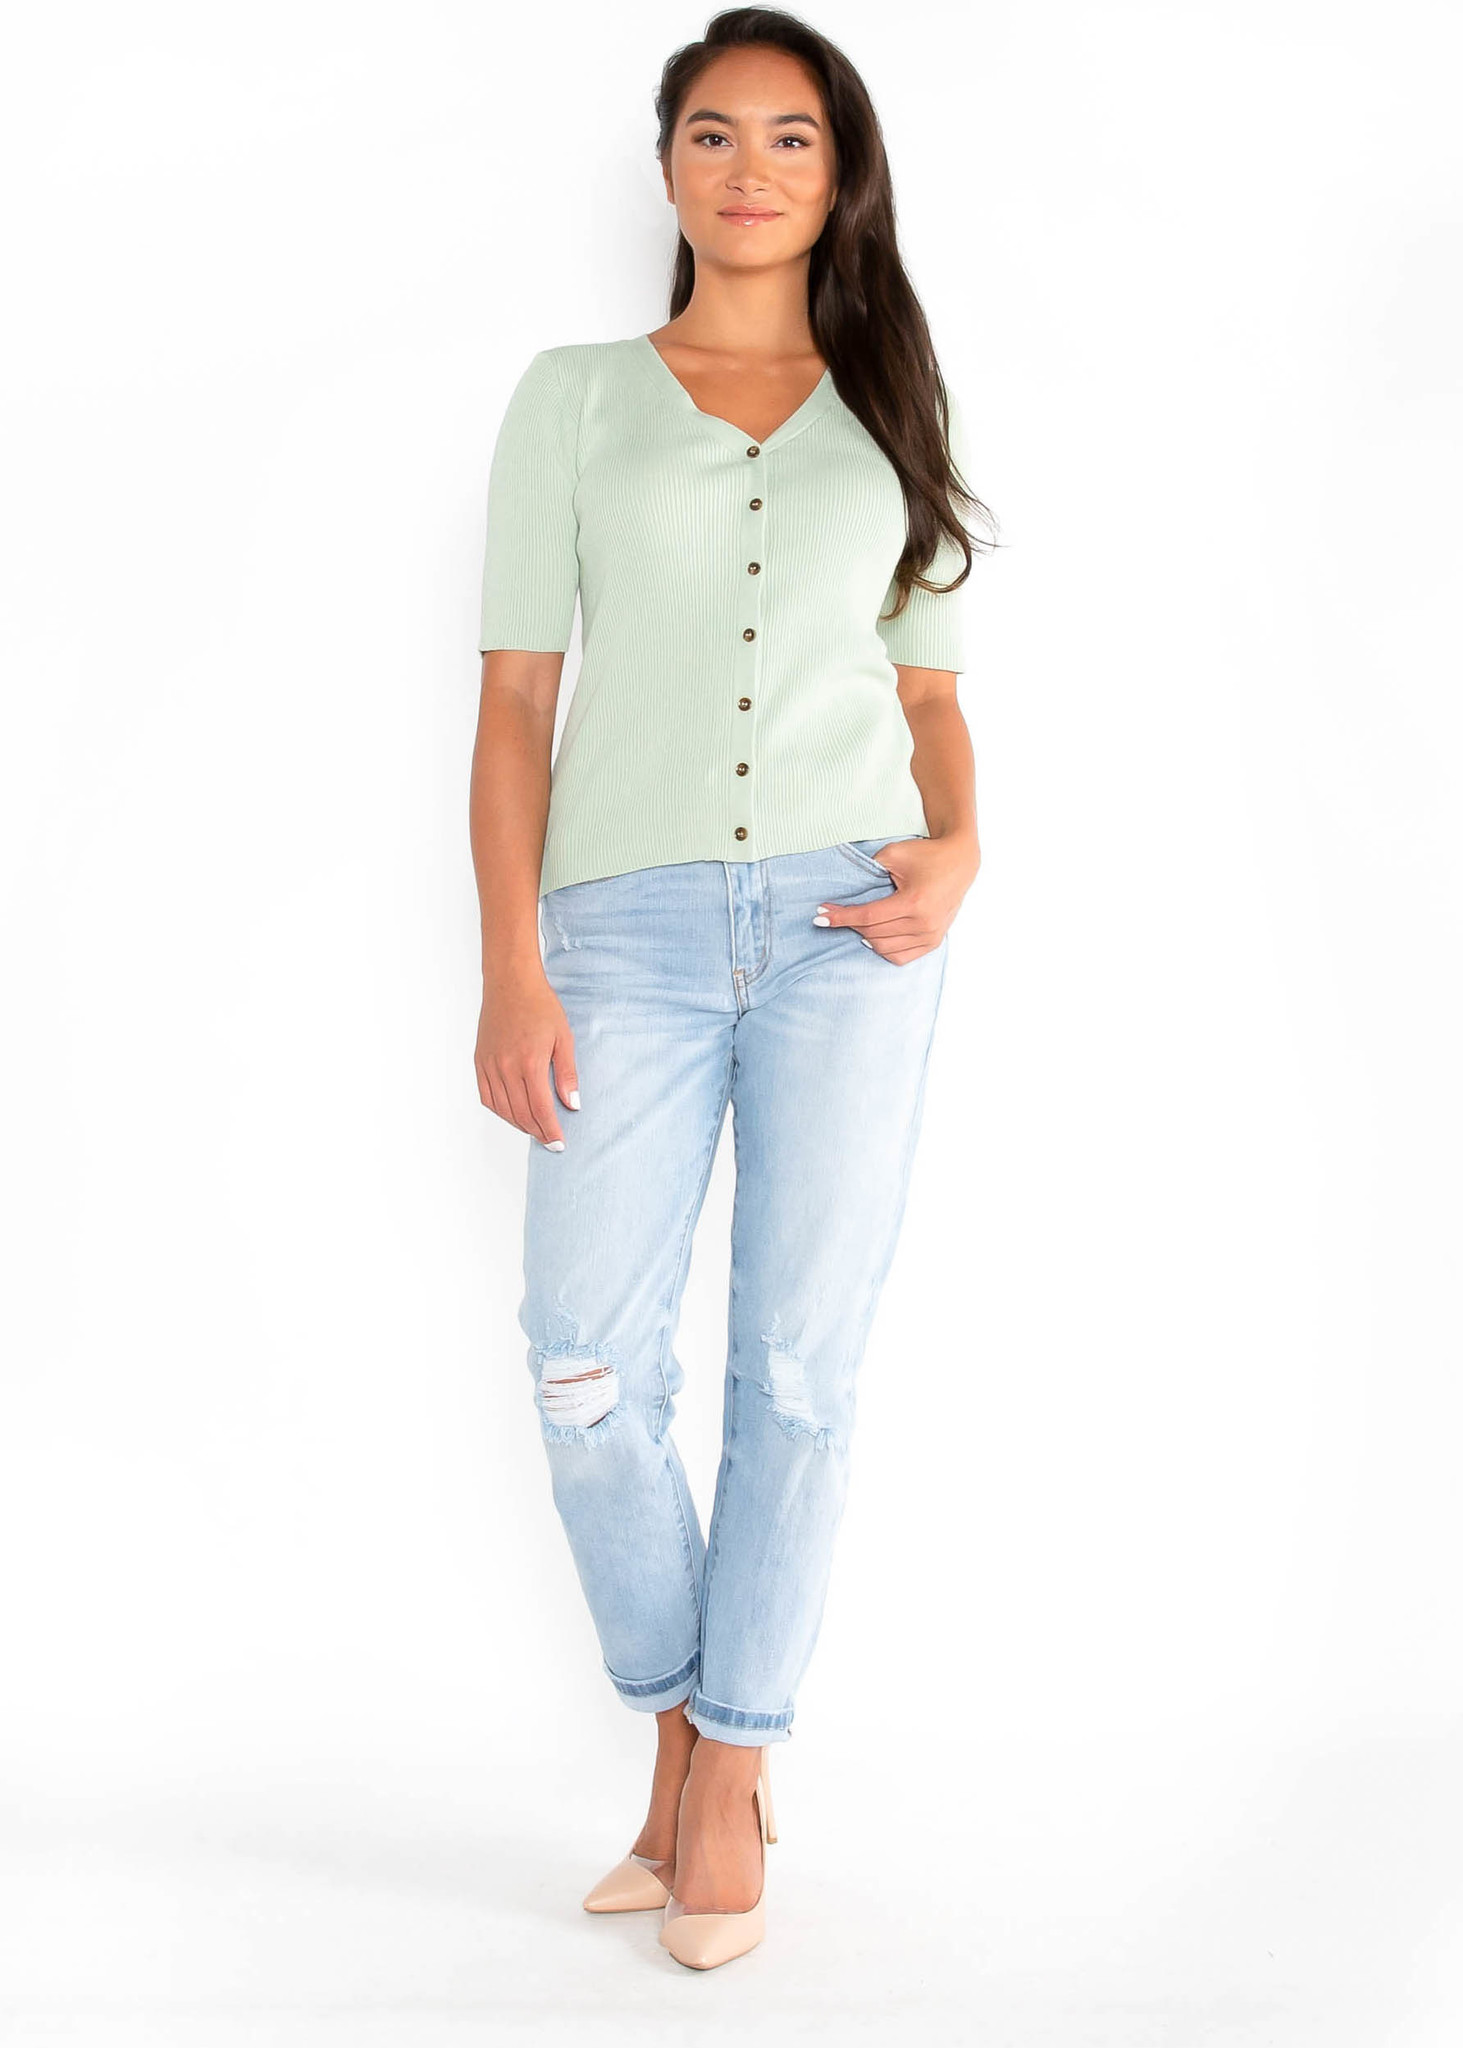 SUNDANCE RIBBED BUTTON UP TOP